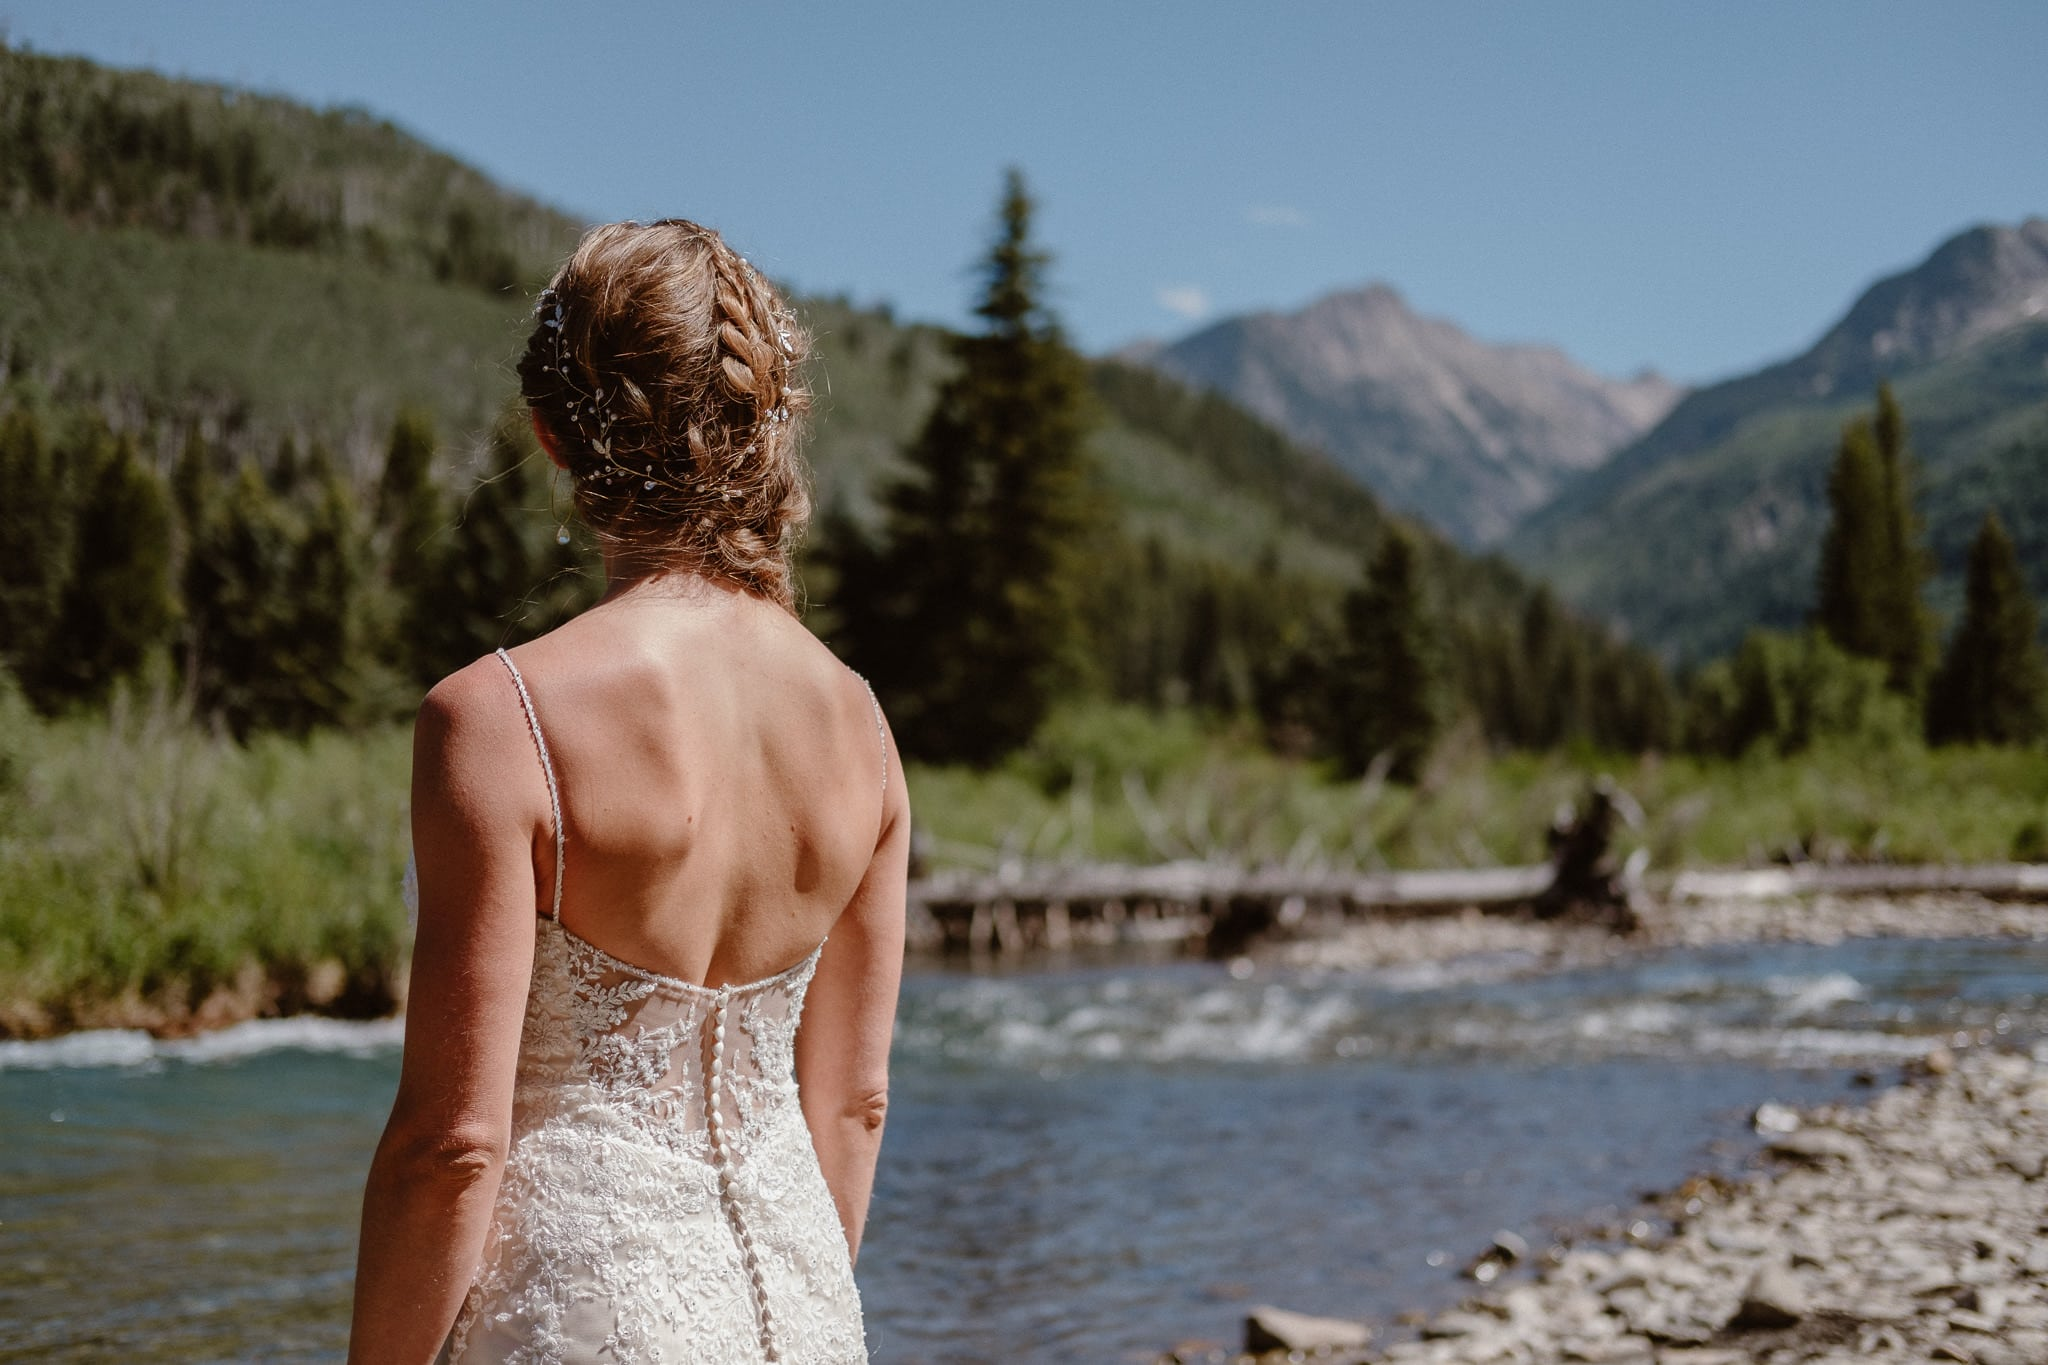 Redstone Inn wedding photographer, Carbondale wedding photographer, Colorado intimate wedding photographer, bride and groom portraits by river in mountains